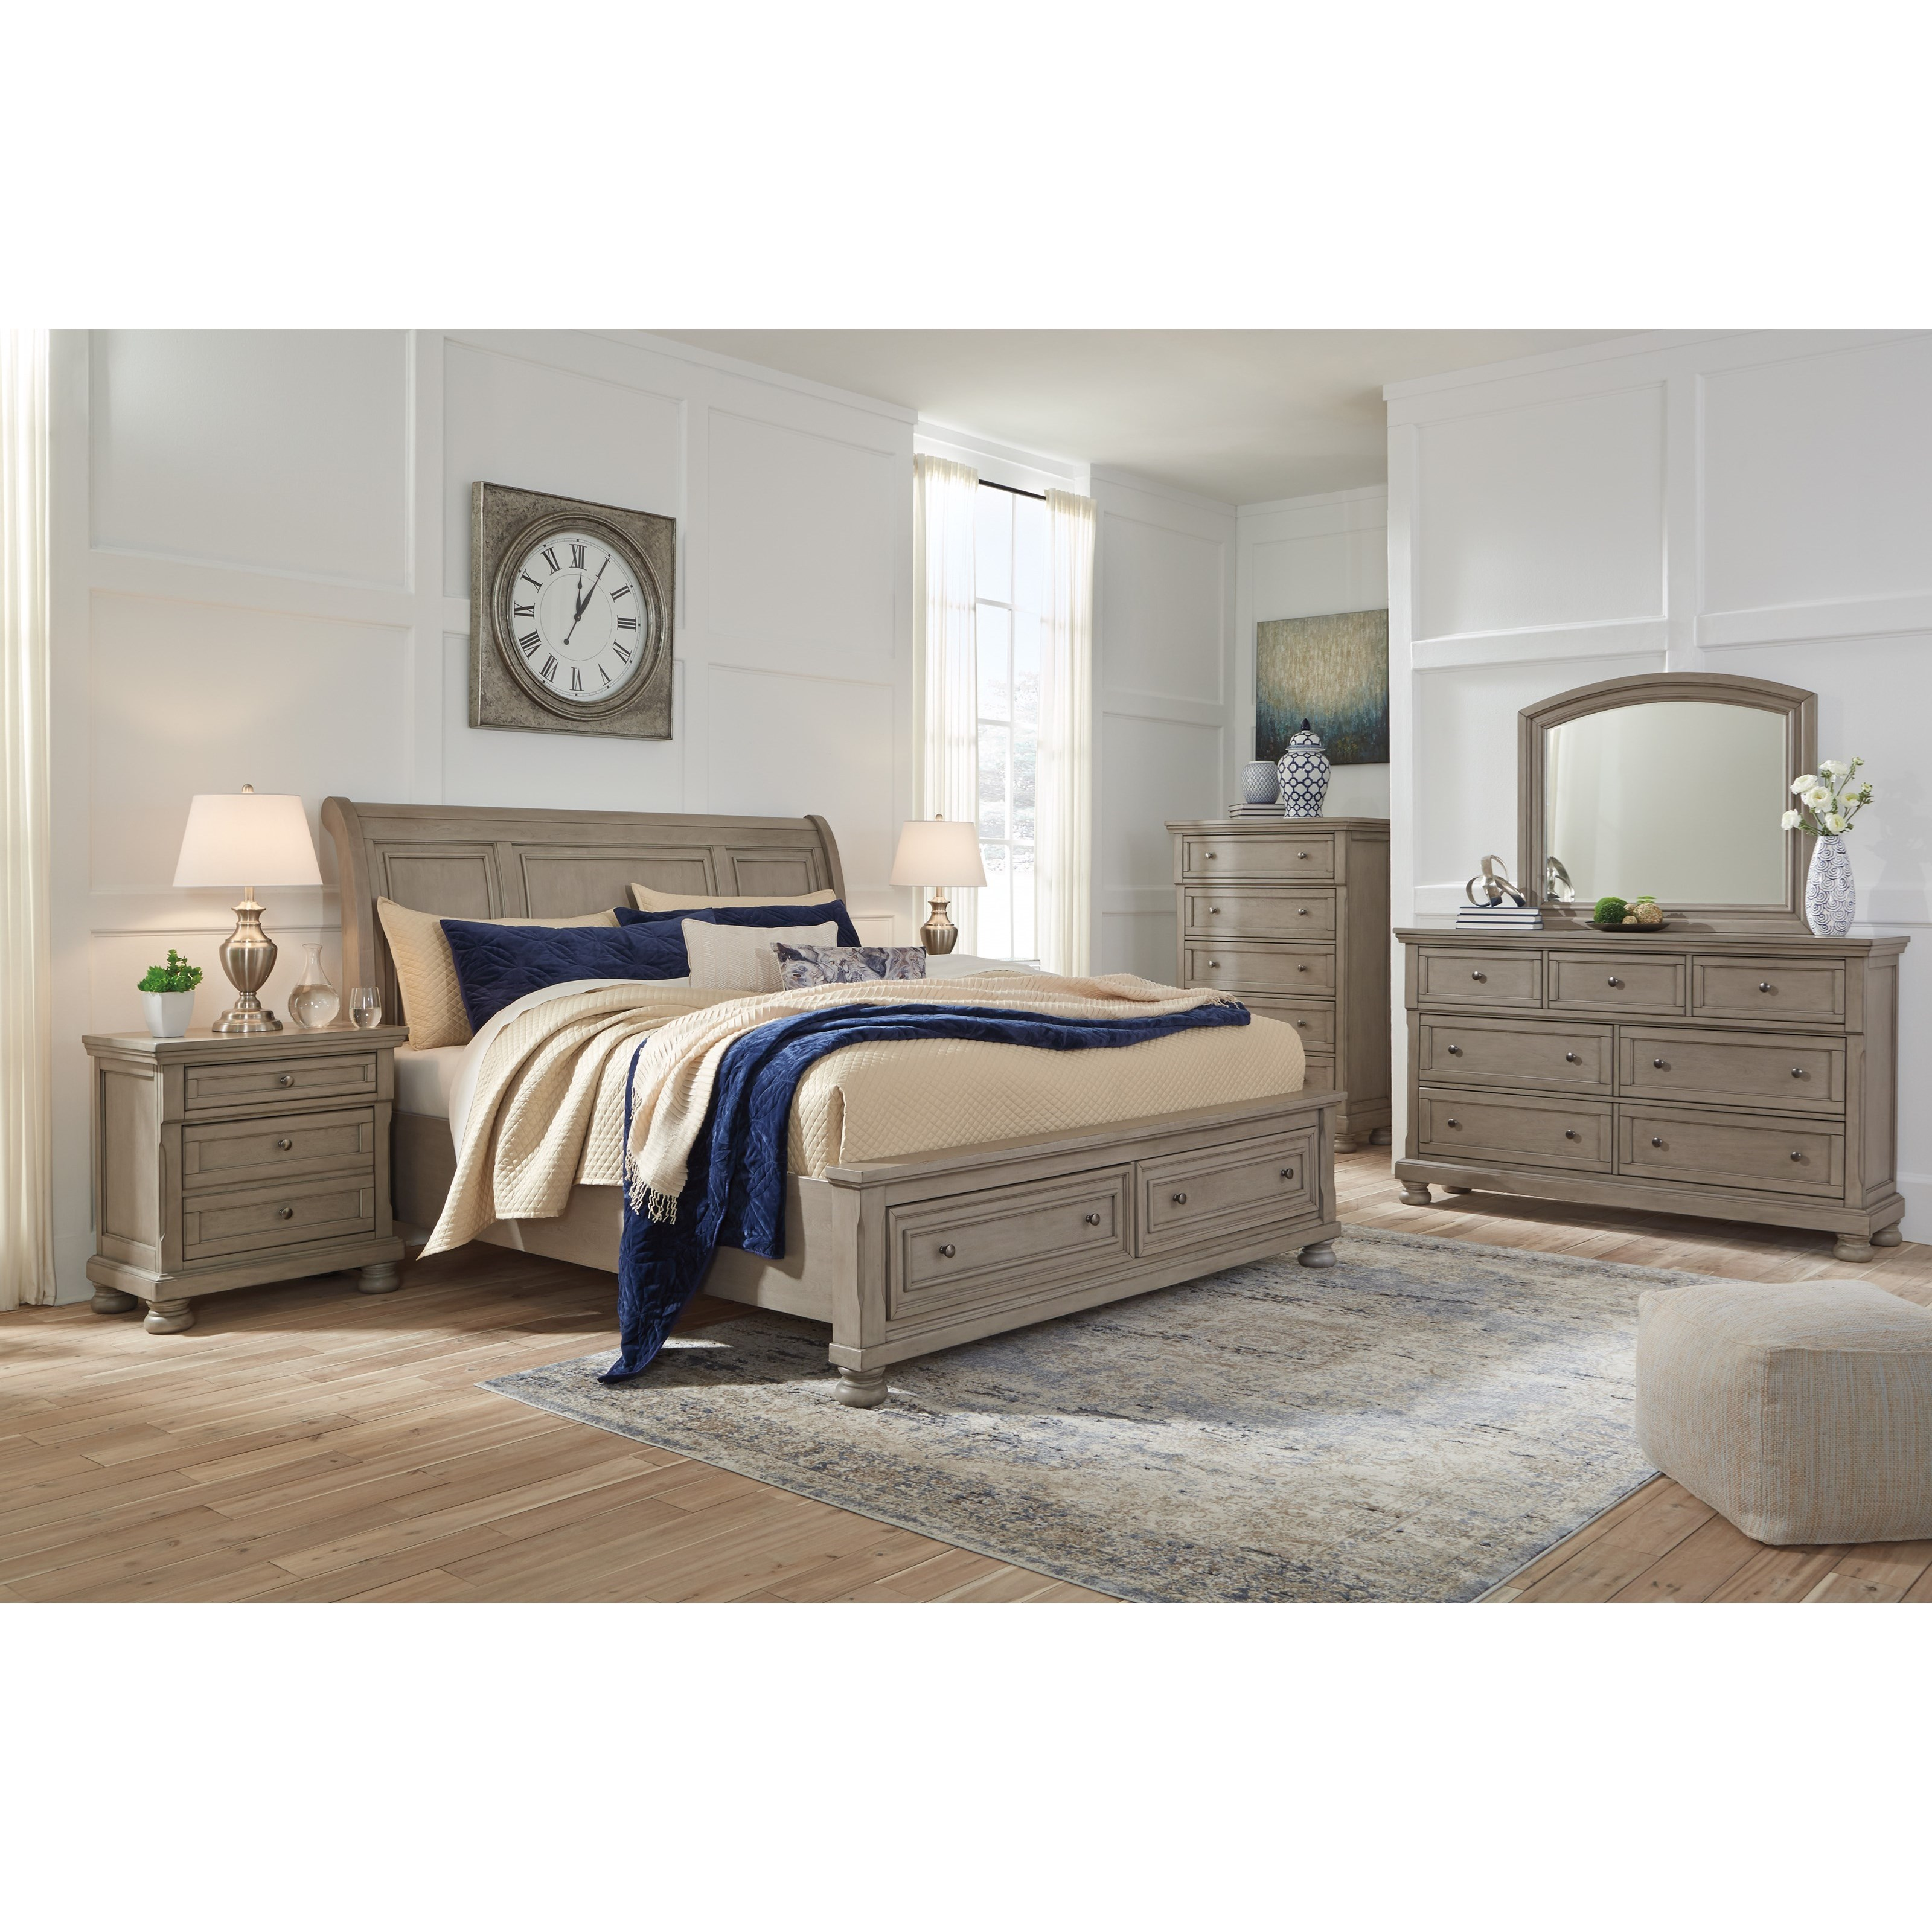 Lettner King Bedroom Group by Signature Design by Ashley at Household Furniture